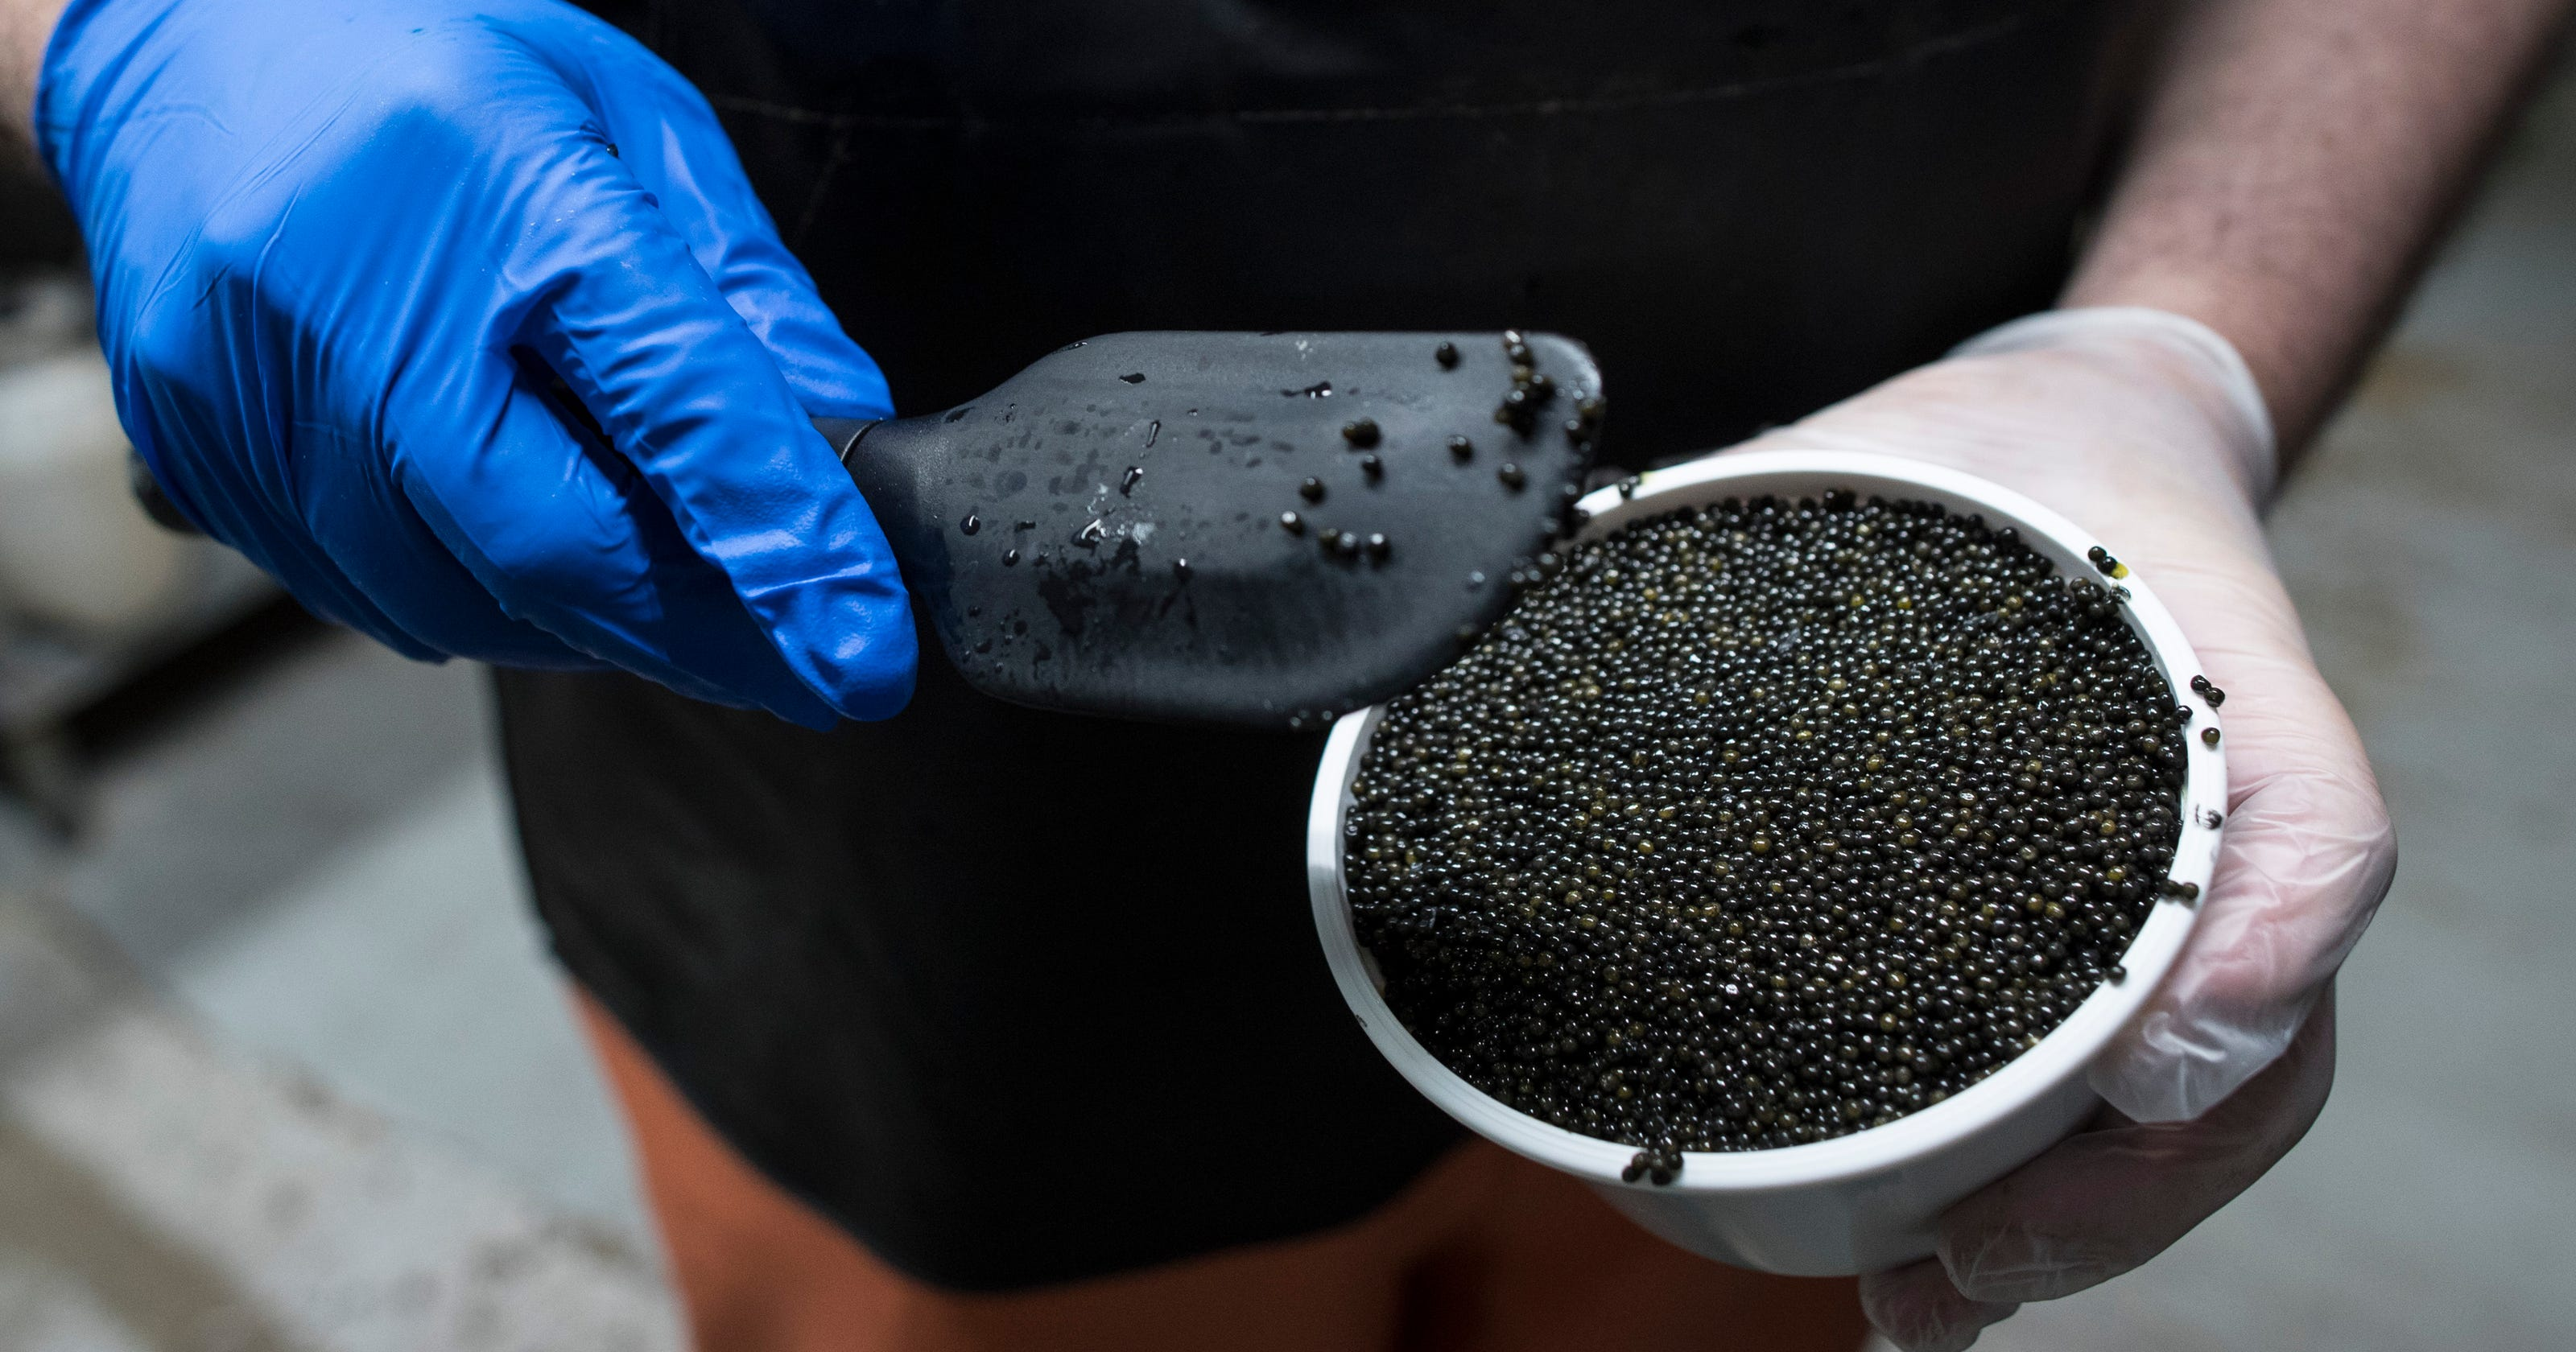 Kentucky caviar: State could become leader in market